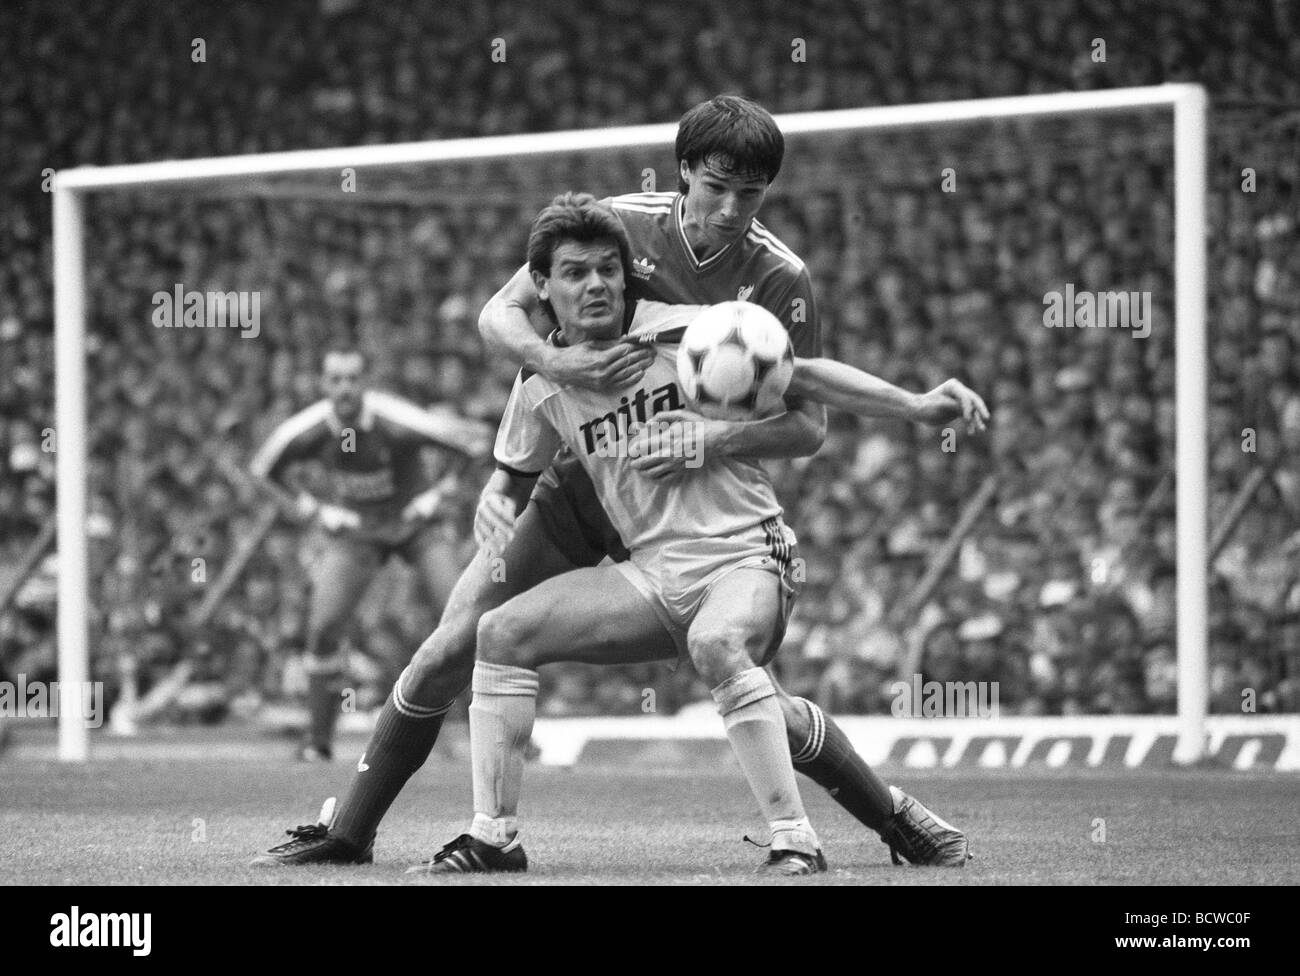 Liverpool V Aston Villa at Anfield 27 9 86 Alan Hansen fouls Steve Hodge to give away a penalty - Stock Image